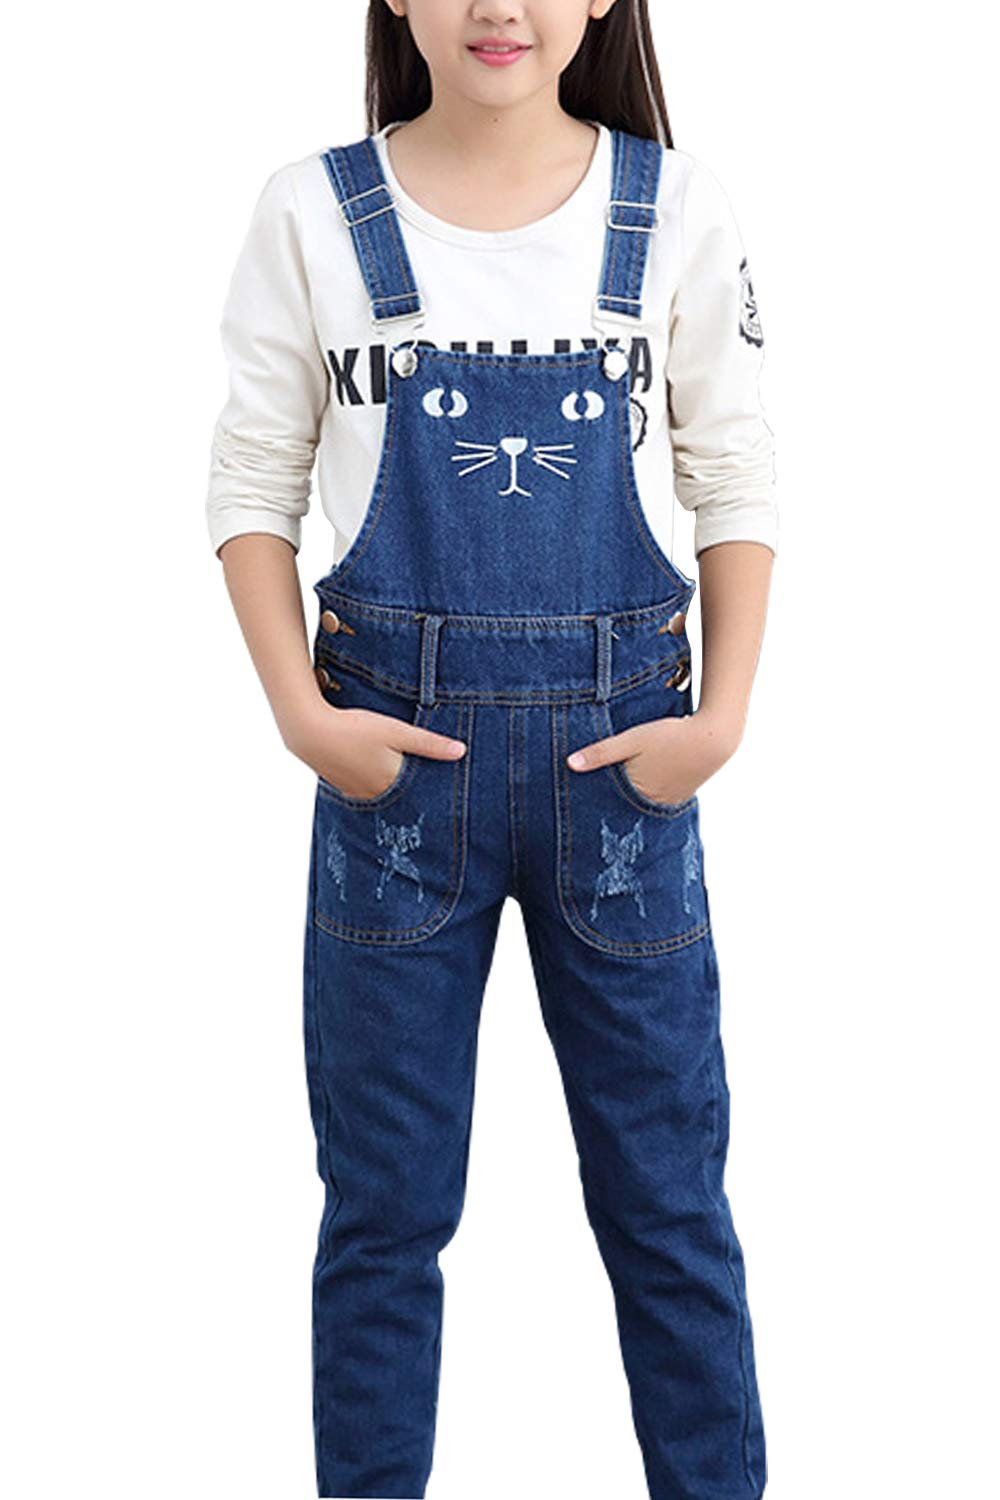 Merryway Big Girls Kids Distressed Denim Overalls Cute Cat Jeans Strecthy Ripped Jeans Romper(Not Include T-Shirt)